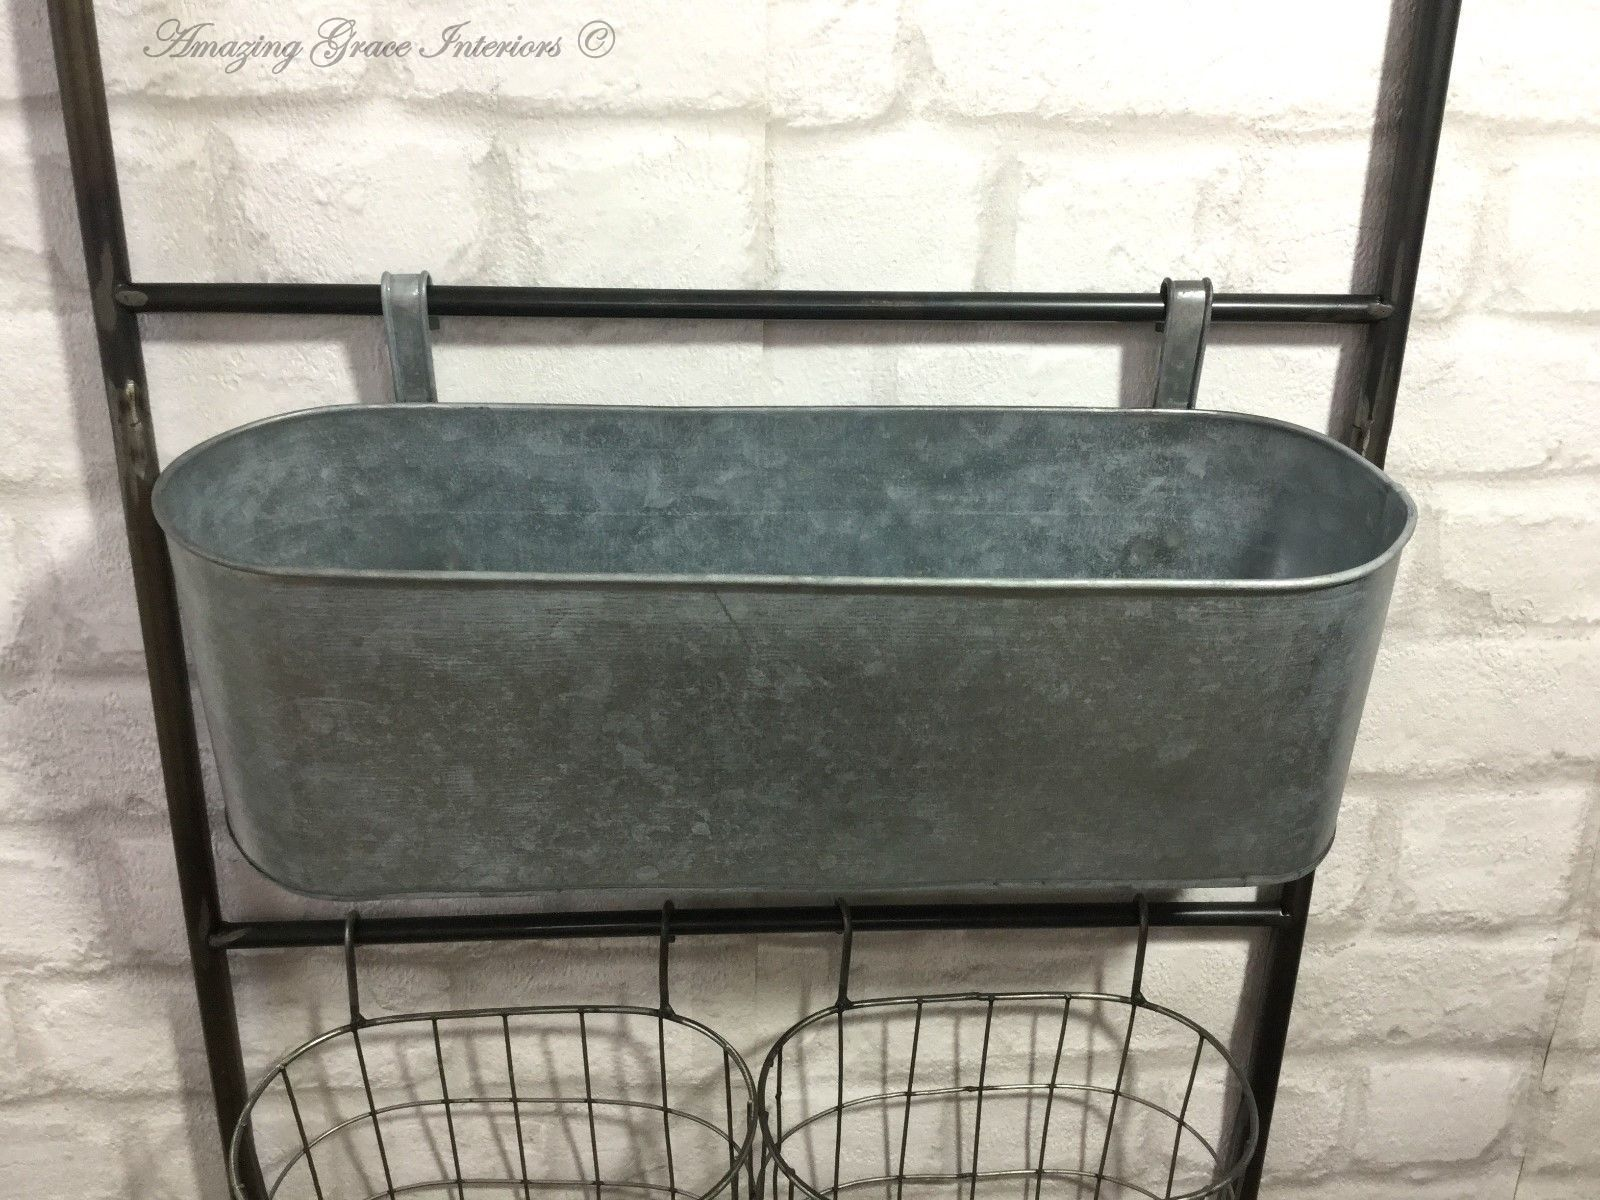 metal chair covers kitchen table vintage industrial style wall shelf unit rack hooks storage baskets – amazing grace ...